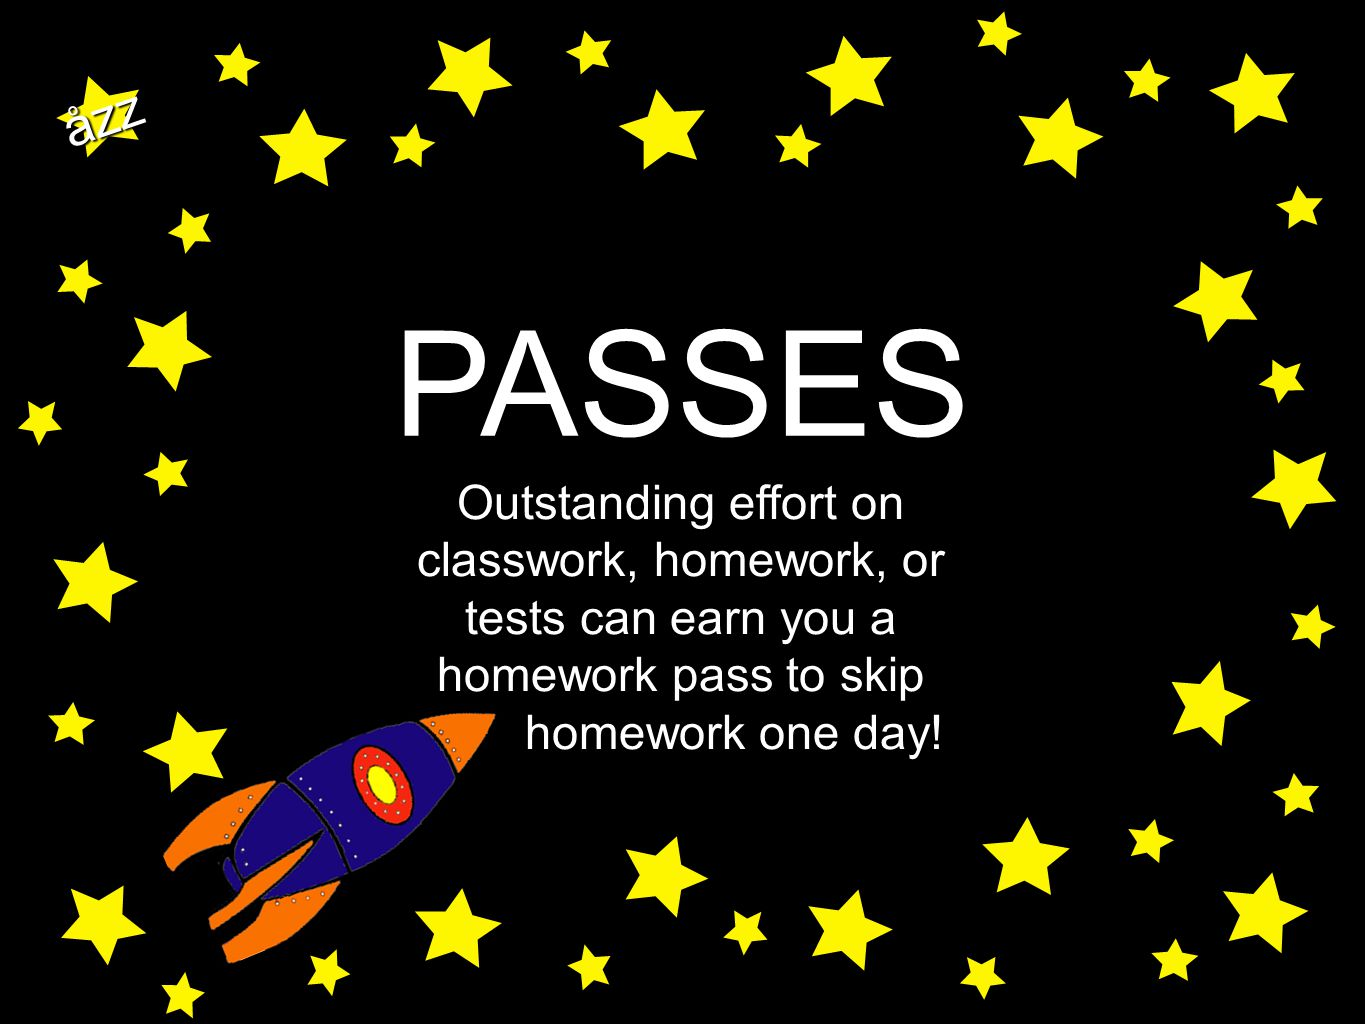 åzz PASSES Outstanding effort on classwork, homework, or tests can earn you a homework pass to skip homework one day!